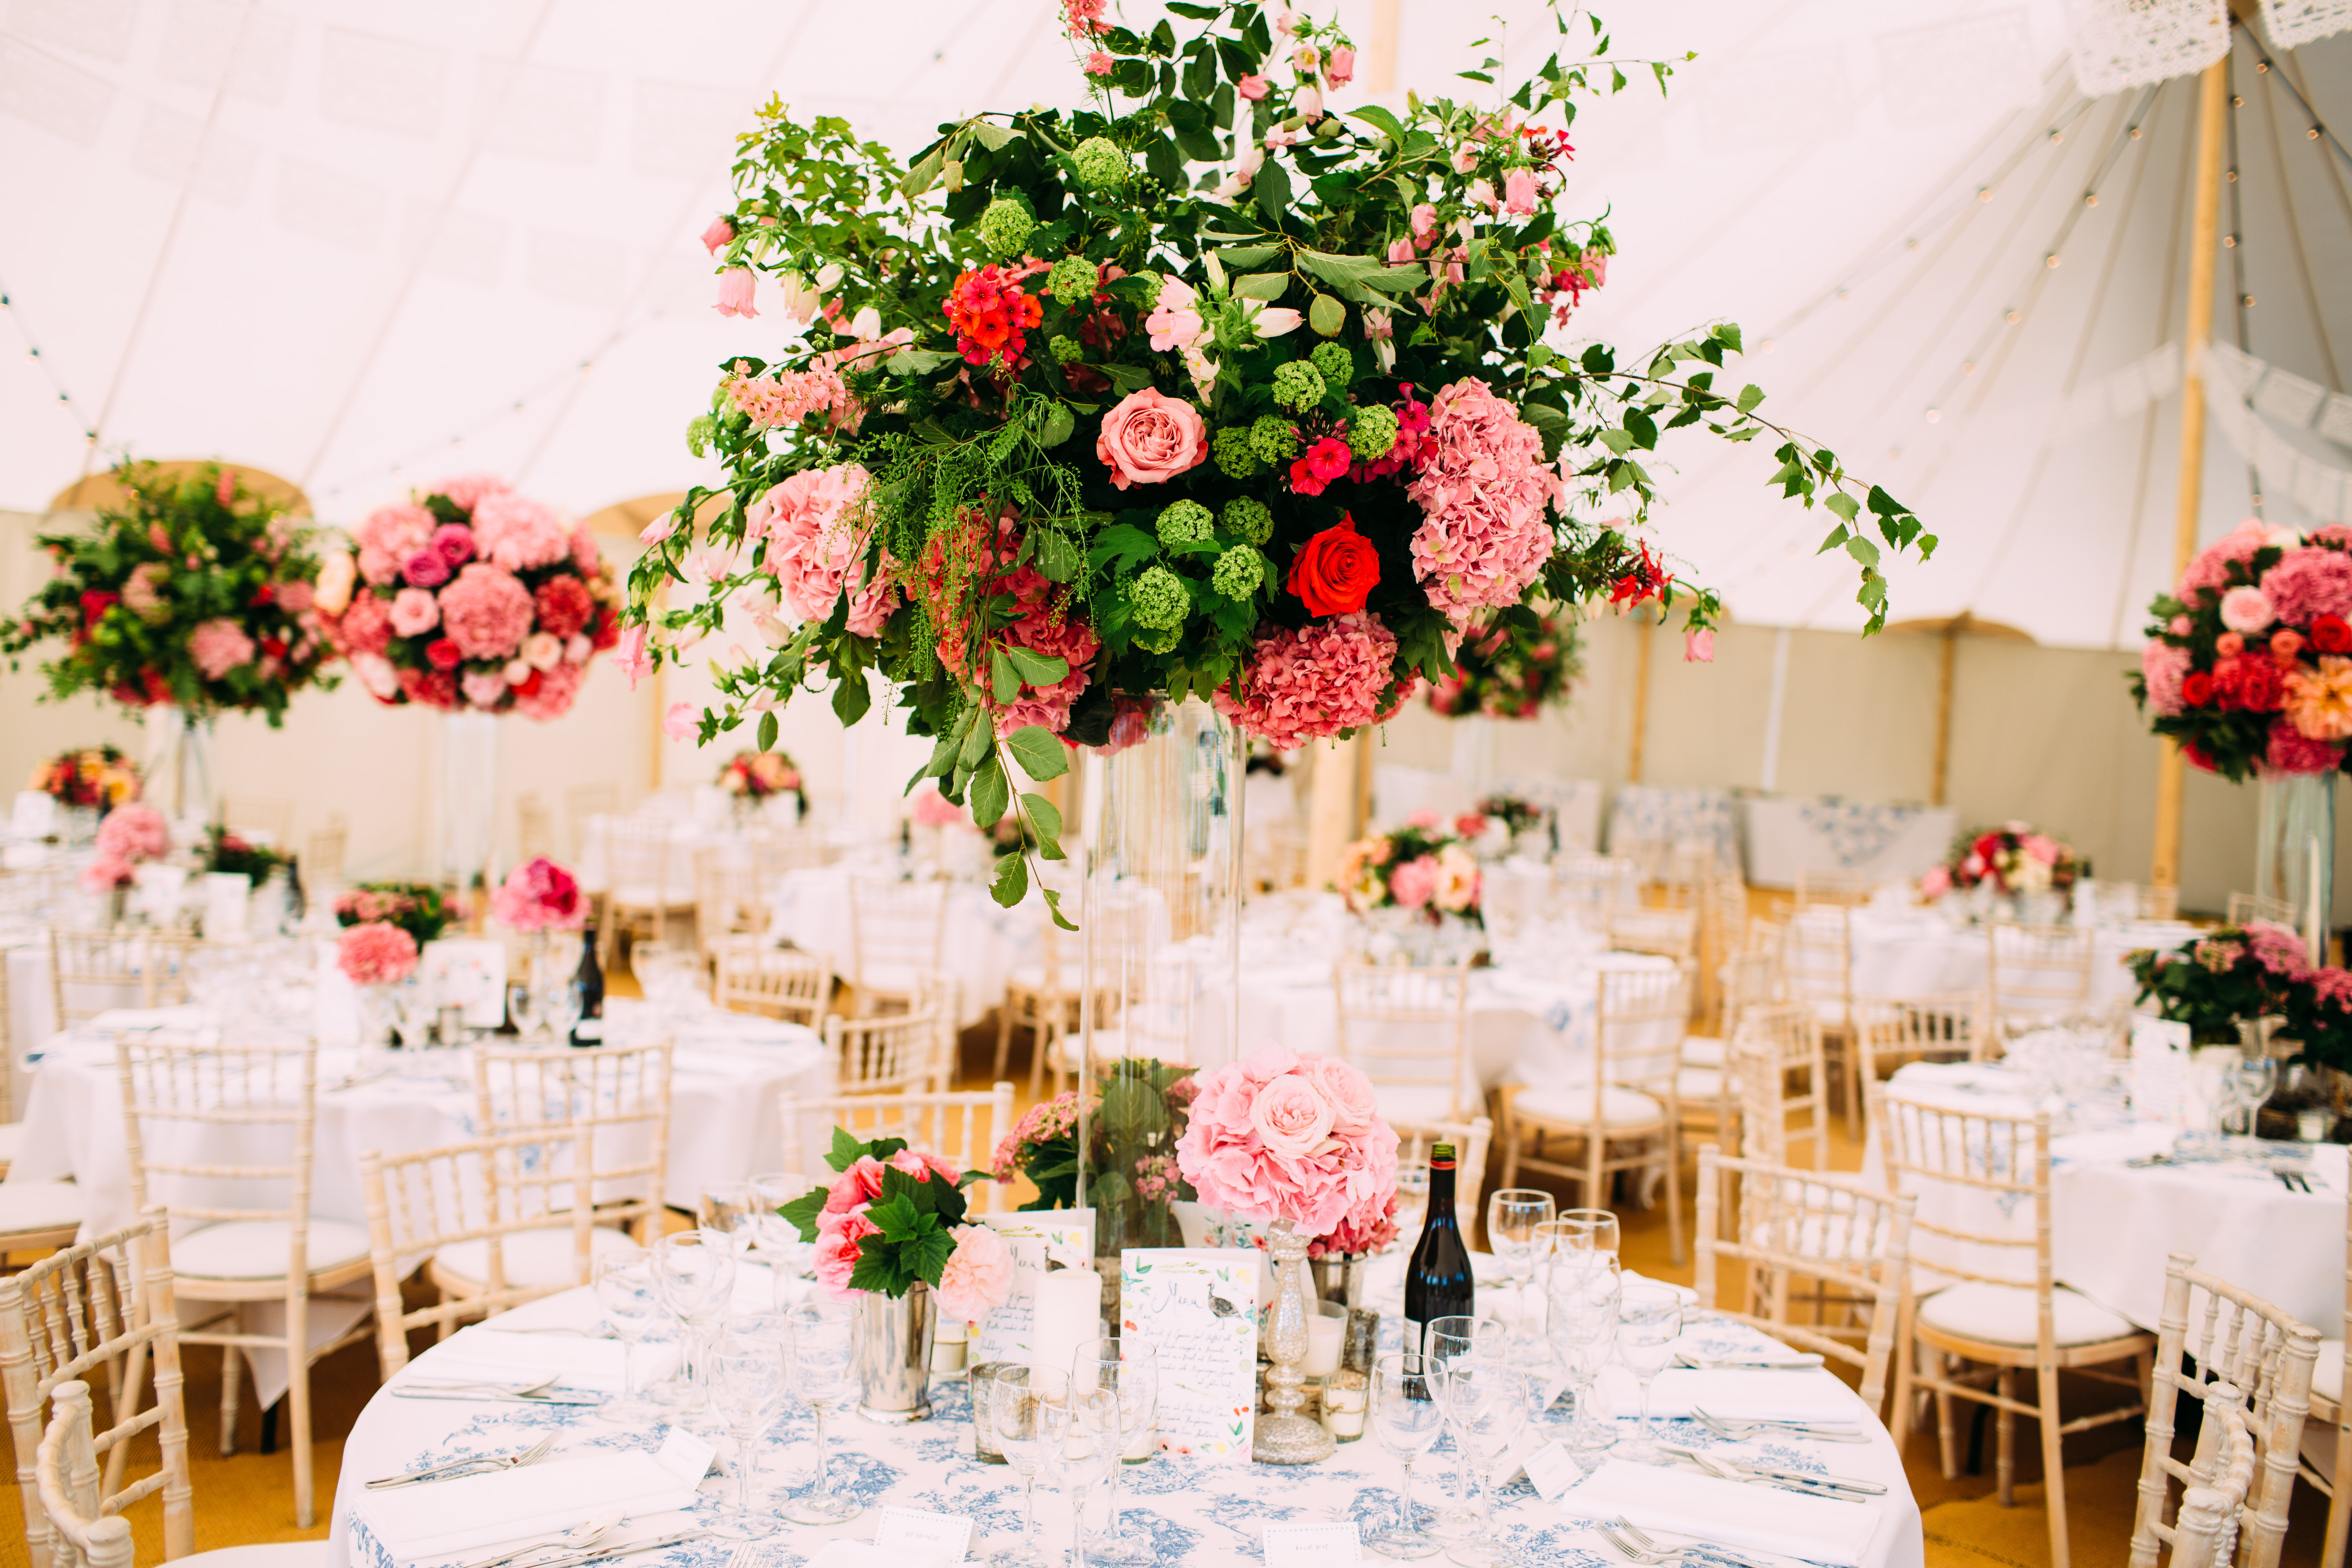 Beautiful & bright florals by Rose & Spade (formally Hart Company) for PapaKåta Sperry Tent couple Chloe & Charlie. Image by Helen Abraham Photography